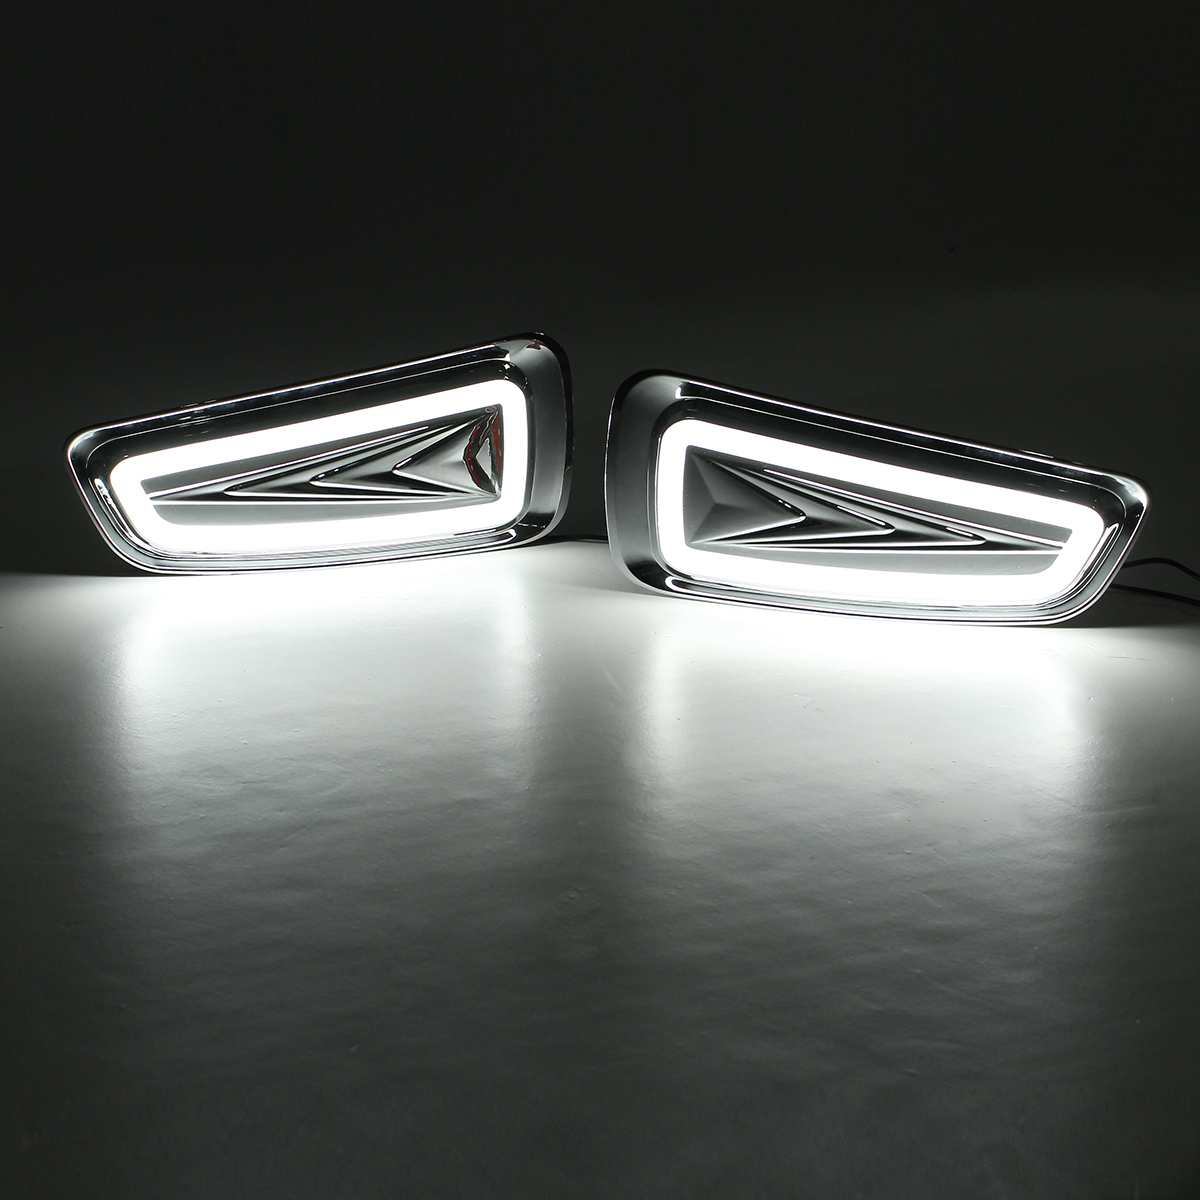 12-24V White LED DRL Daytime Running Light Fog Lamps Left Right For Ford F150 Raptor SVT DRL 2009 2010 2011 2012 2013 2014 201512-24V White LED DRL Daytime Running Light Fog Lamps Left Right For Ford F150 Raptor SVT DRL 2009 2010 2011 2012 2013 2014 2015